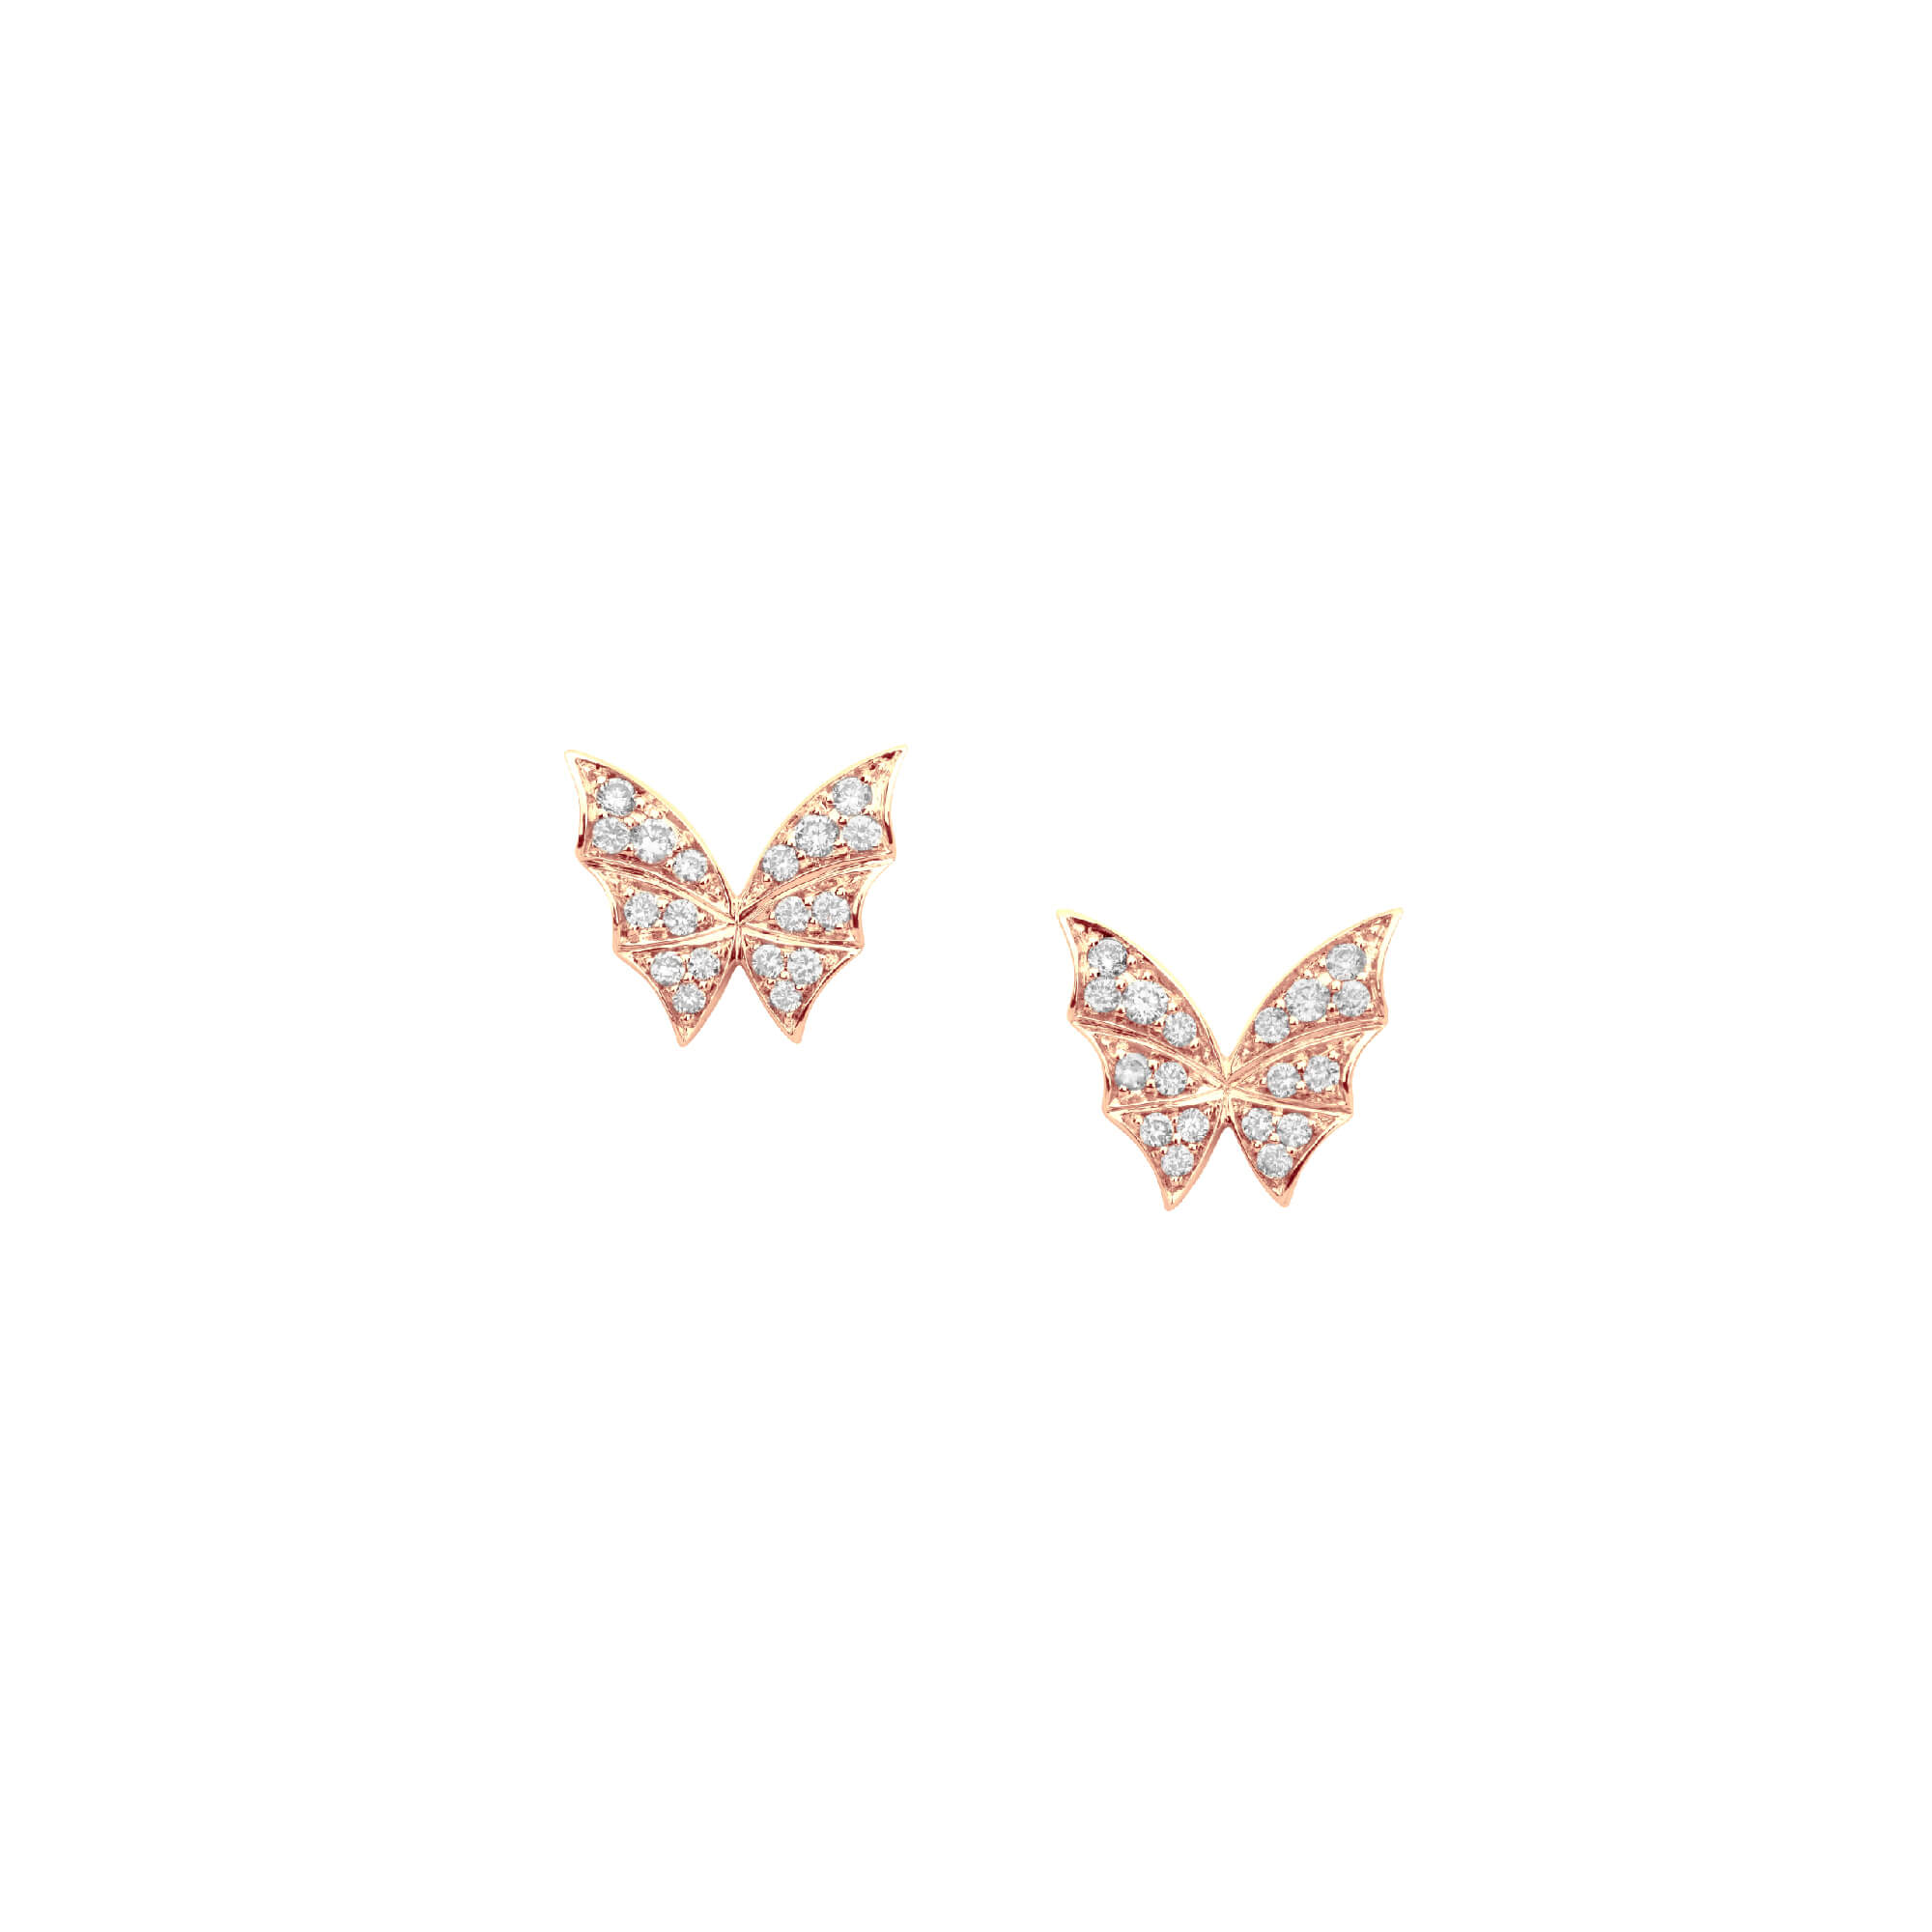 Rose Gold Pavé Stud Earrings | Fly By Night